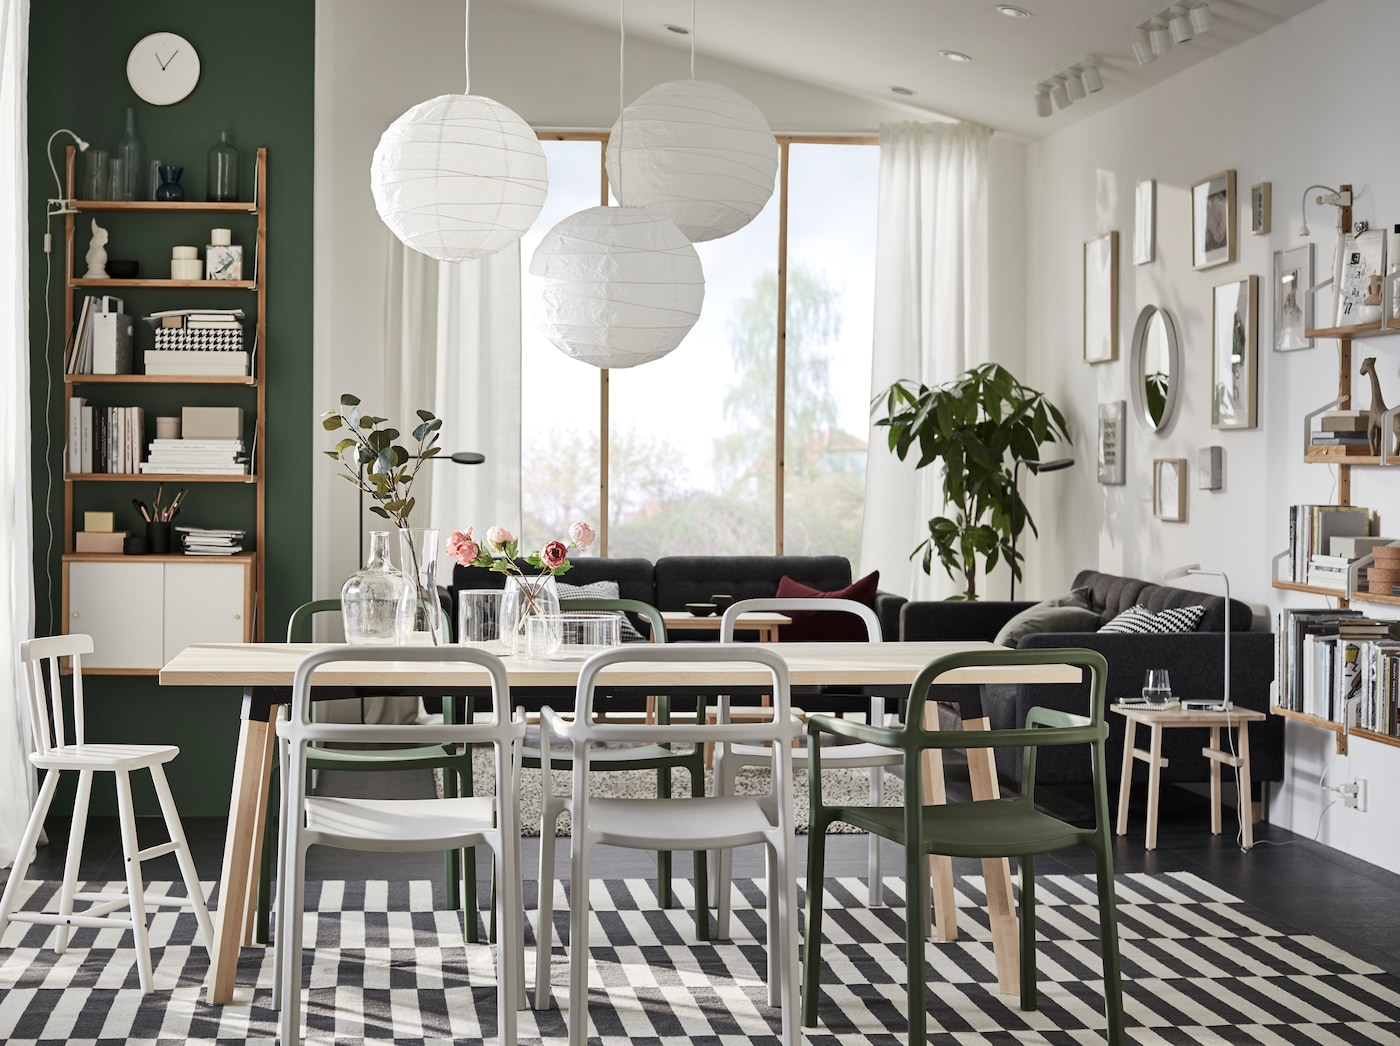 YPPERLIG white and green chairs with YPPERLIG solid birch dining table in a Scandinavian-styled open living space.